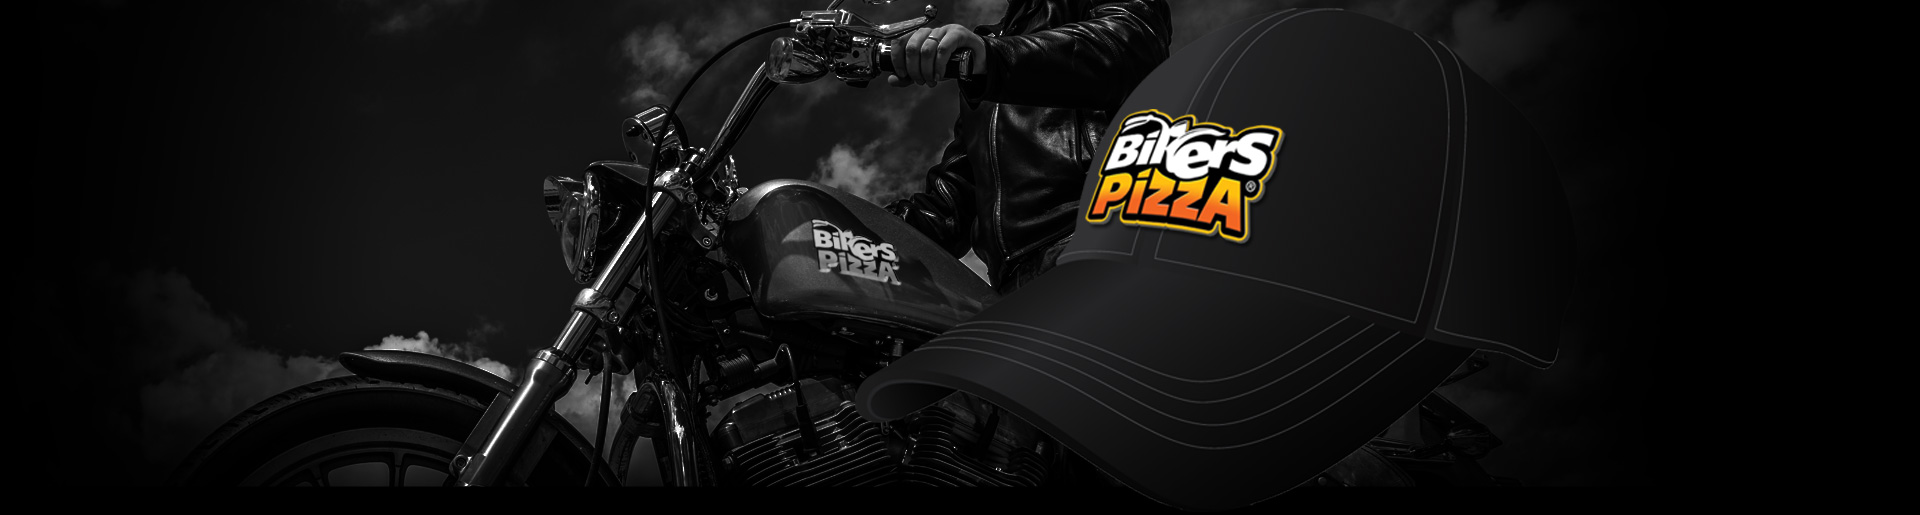 "Логотип ""Bikers pizza"""